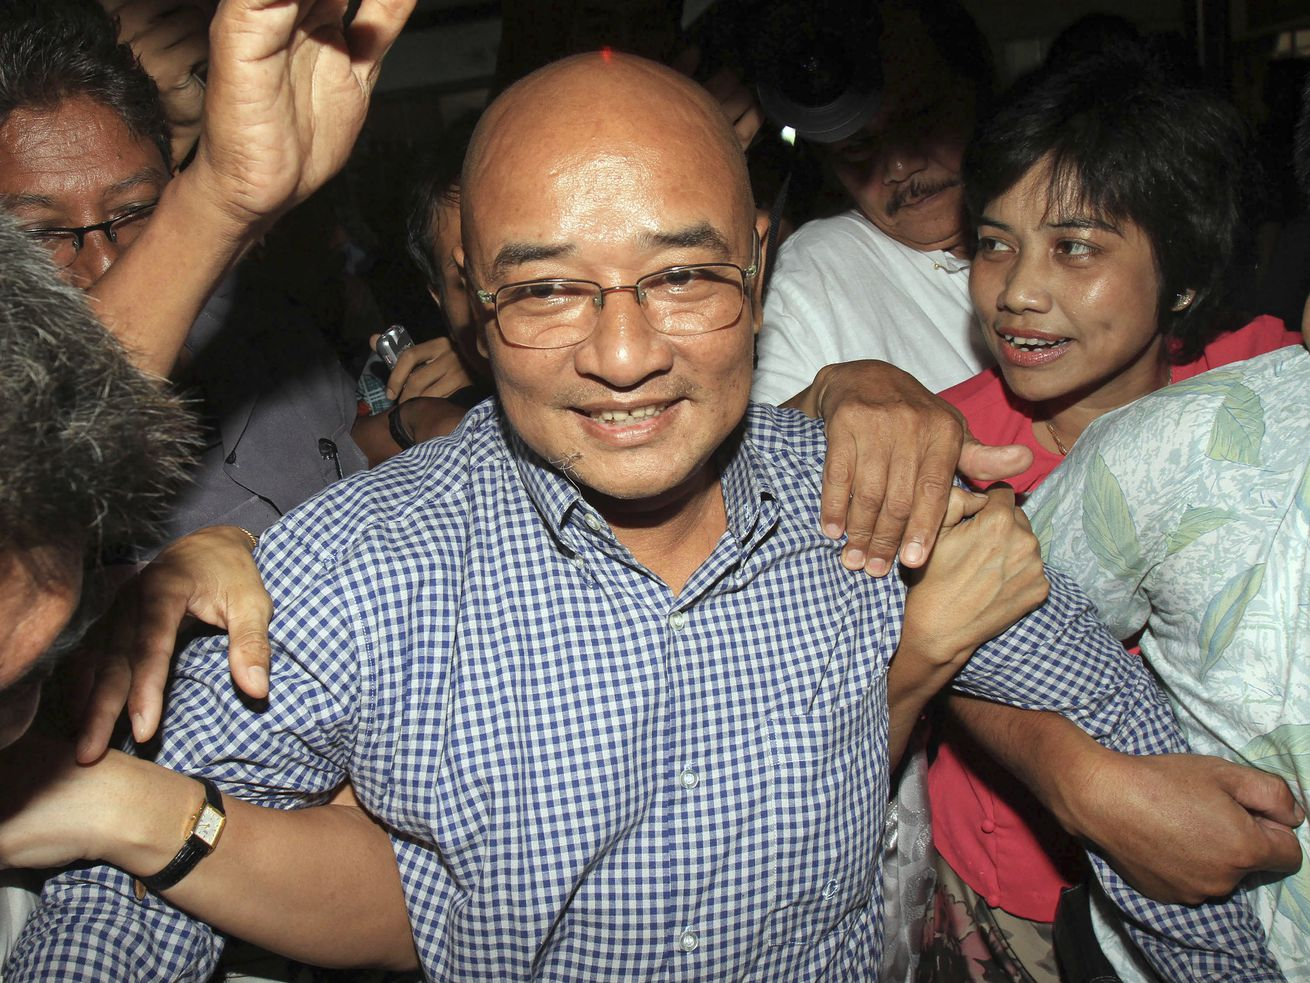 n this Oct. 12, 2011, file photo, Myanmar's comedian and activist Zarganar, who was serving a 35-year sentence in Myitkyina prison in northernmost Kachin State, arrives at Yangon International Airport in Yangon, Myanmar, after he was released early on Wednesday, Oct. 12, 2011.